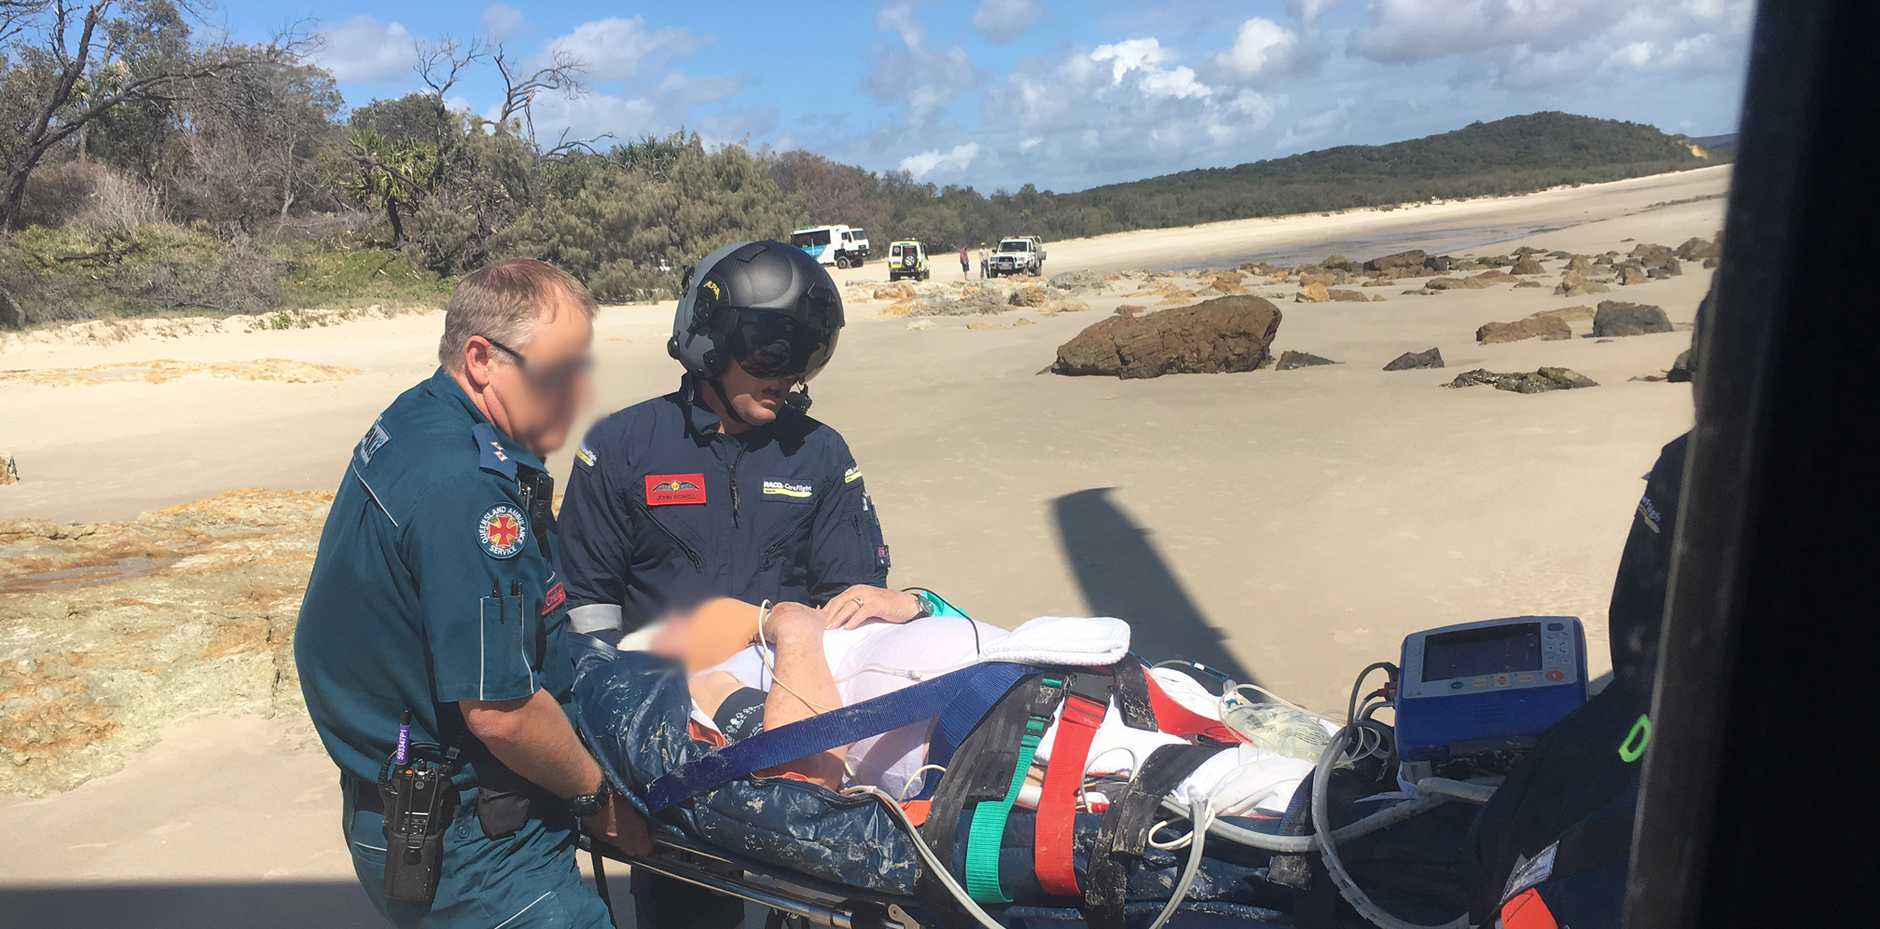 A woman was rescued by the RACQ chopper off Moreton Island today